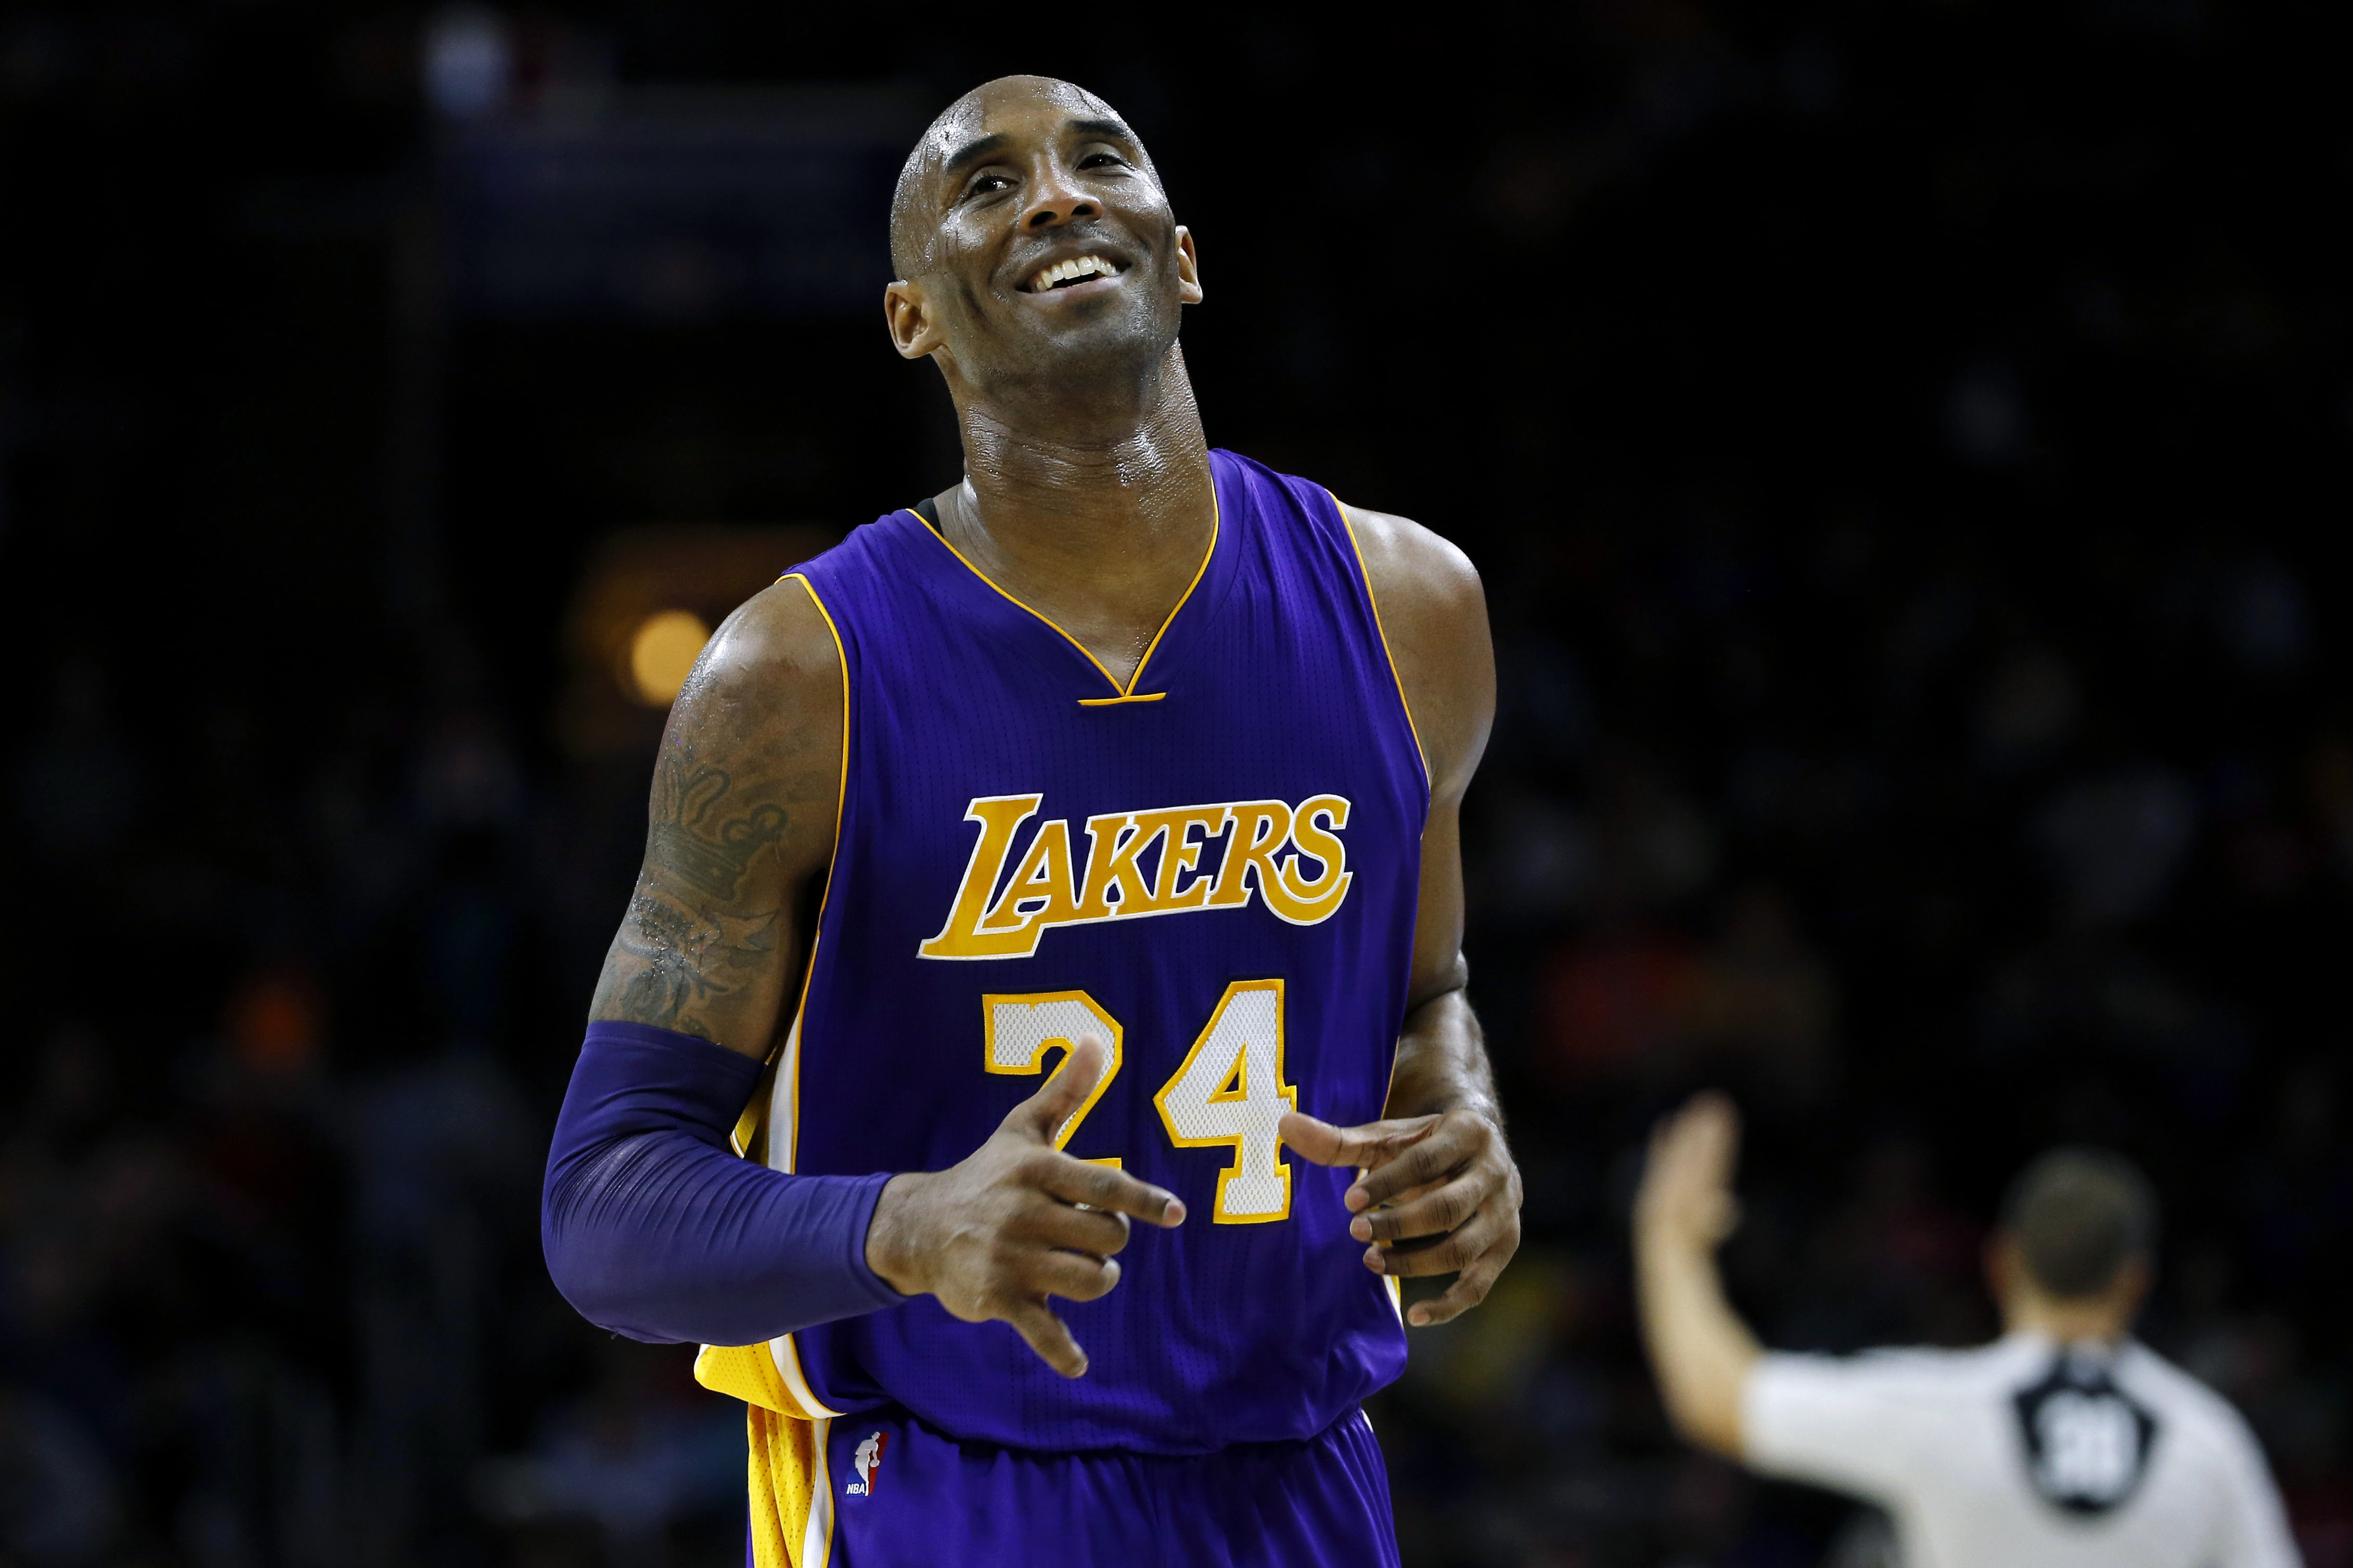 Kobe Bryant S Death Leaves Nba Players Others In Shock Kpbs